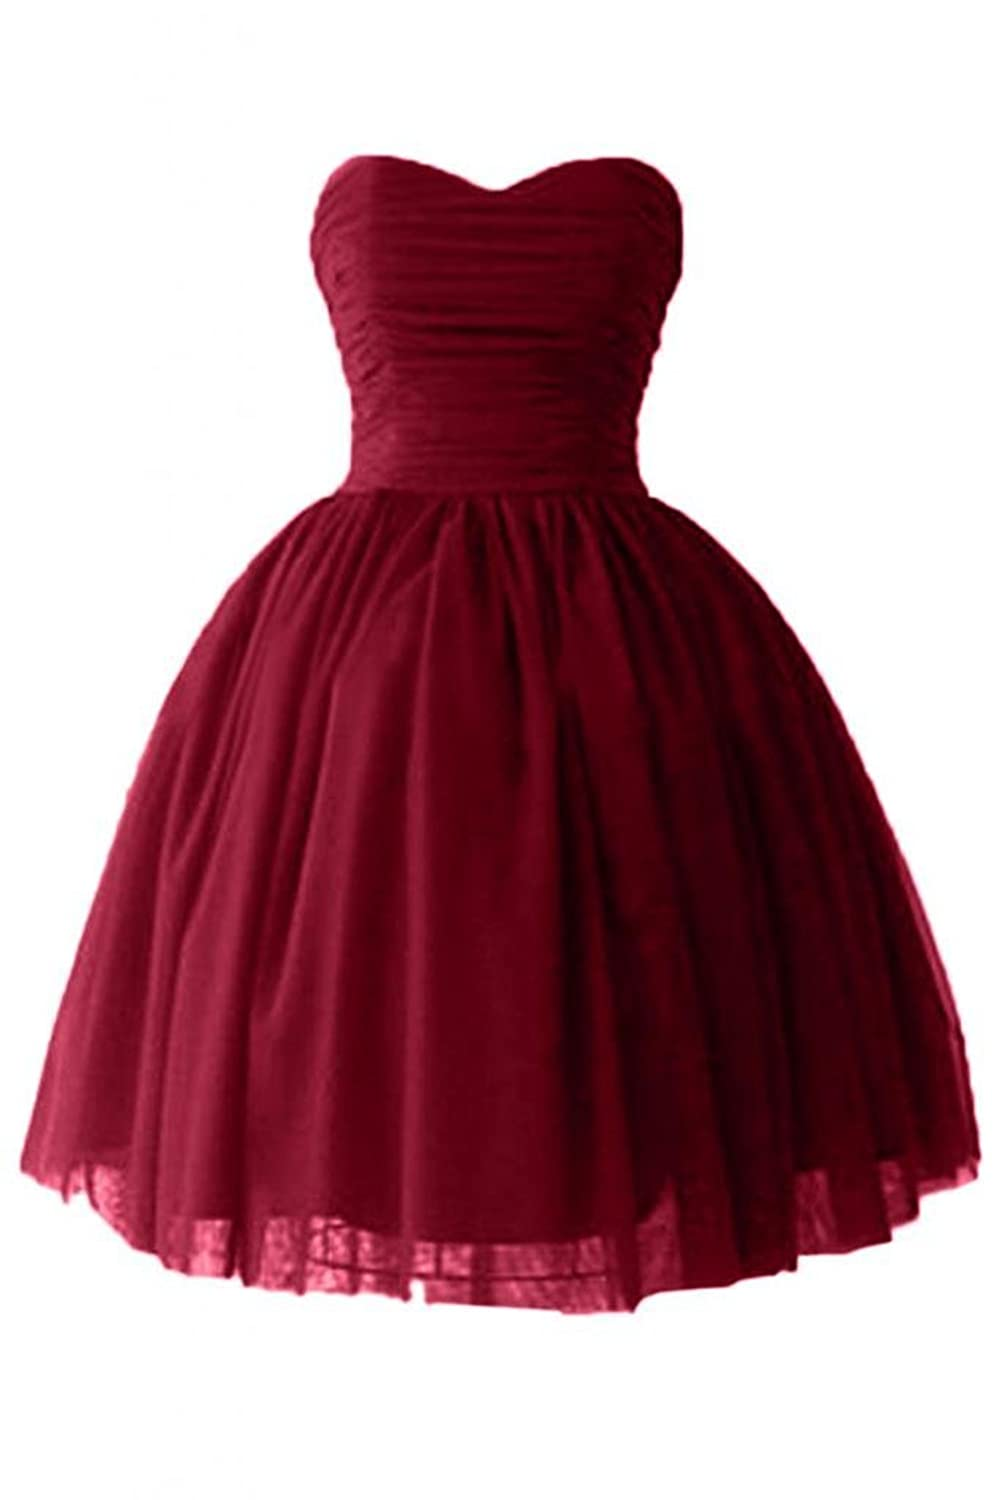 Yougao Women's Dress Ball Gown Sweetheart Cocktail Dresses Satin Tulle Homecoming Dresses US 24W Burgundy